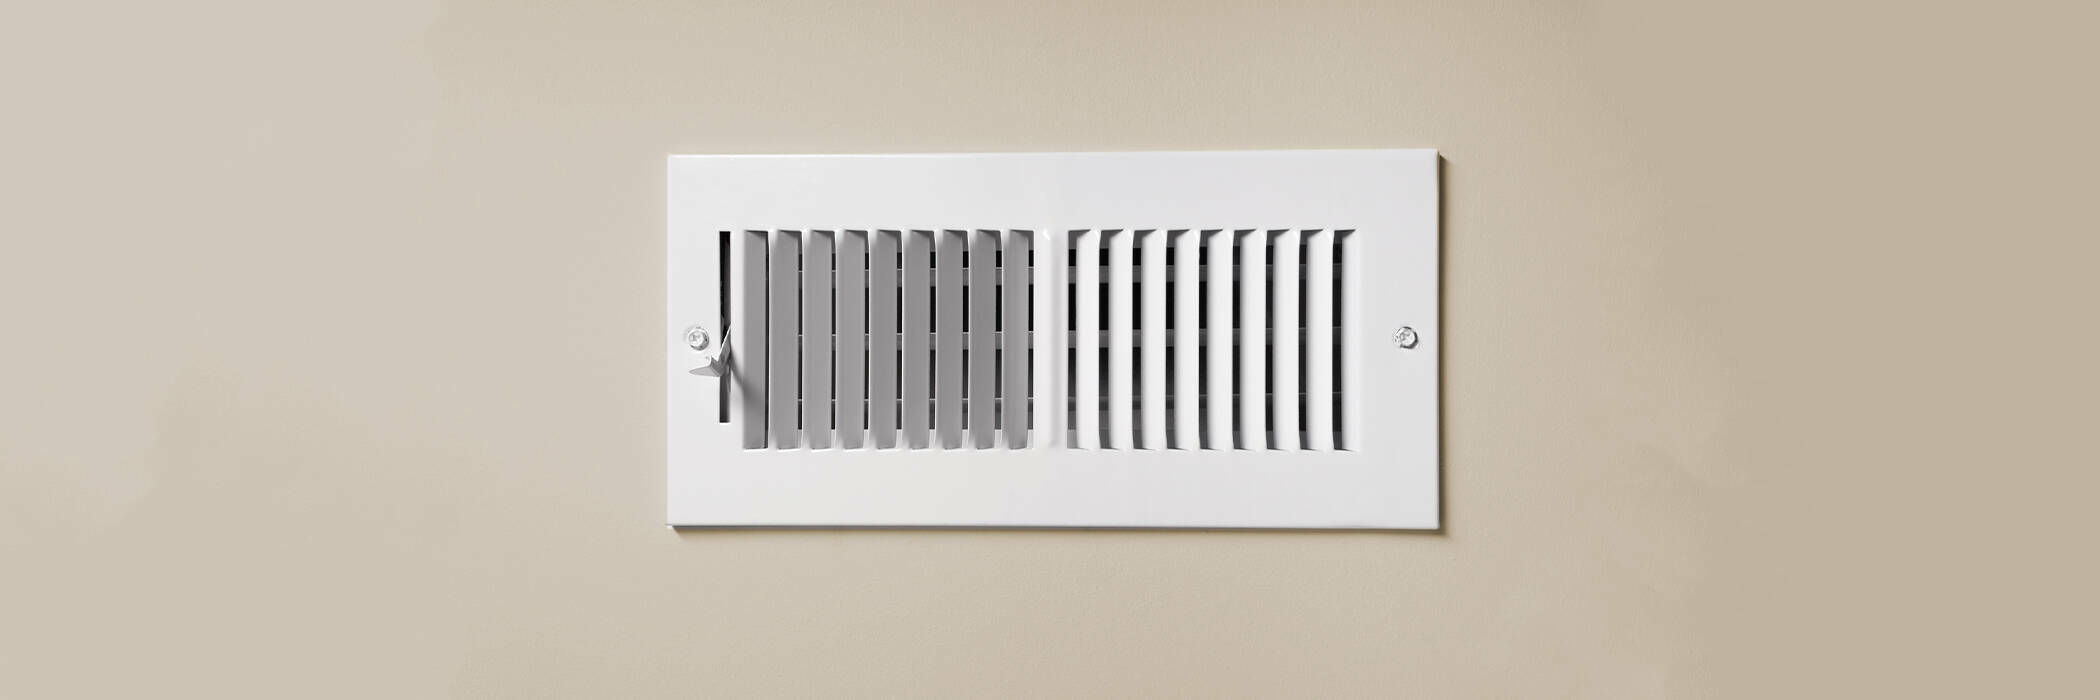 A cooling vent register on the wall of a home, with open lever.